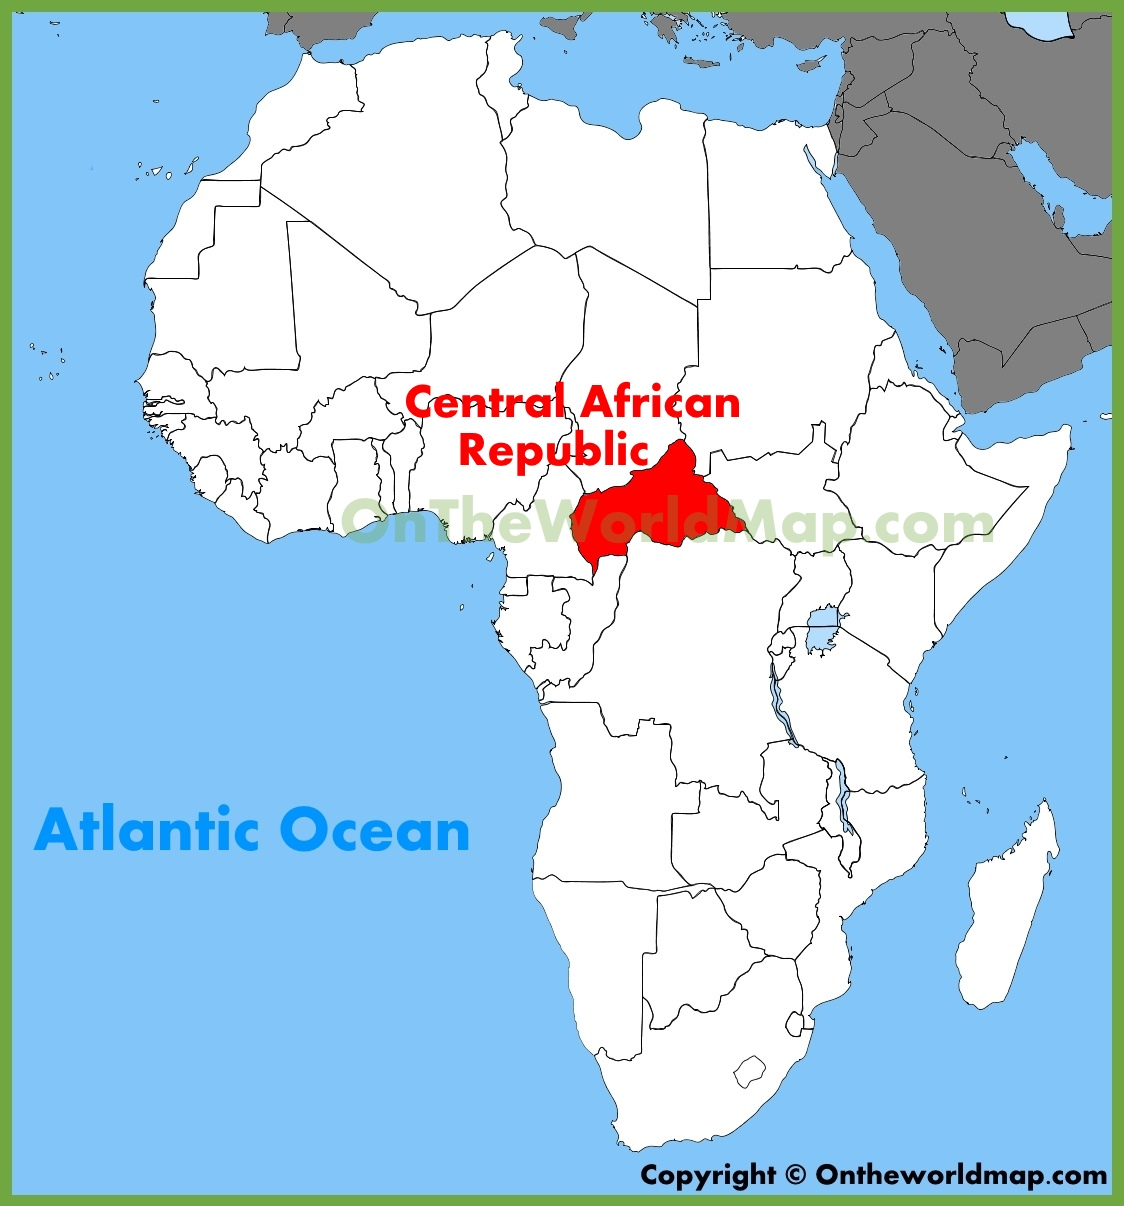 Central African Republic location on the Africa map